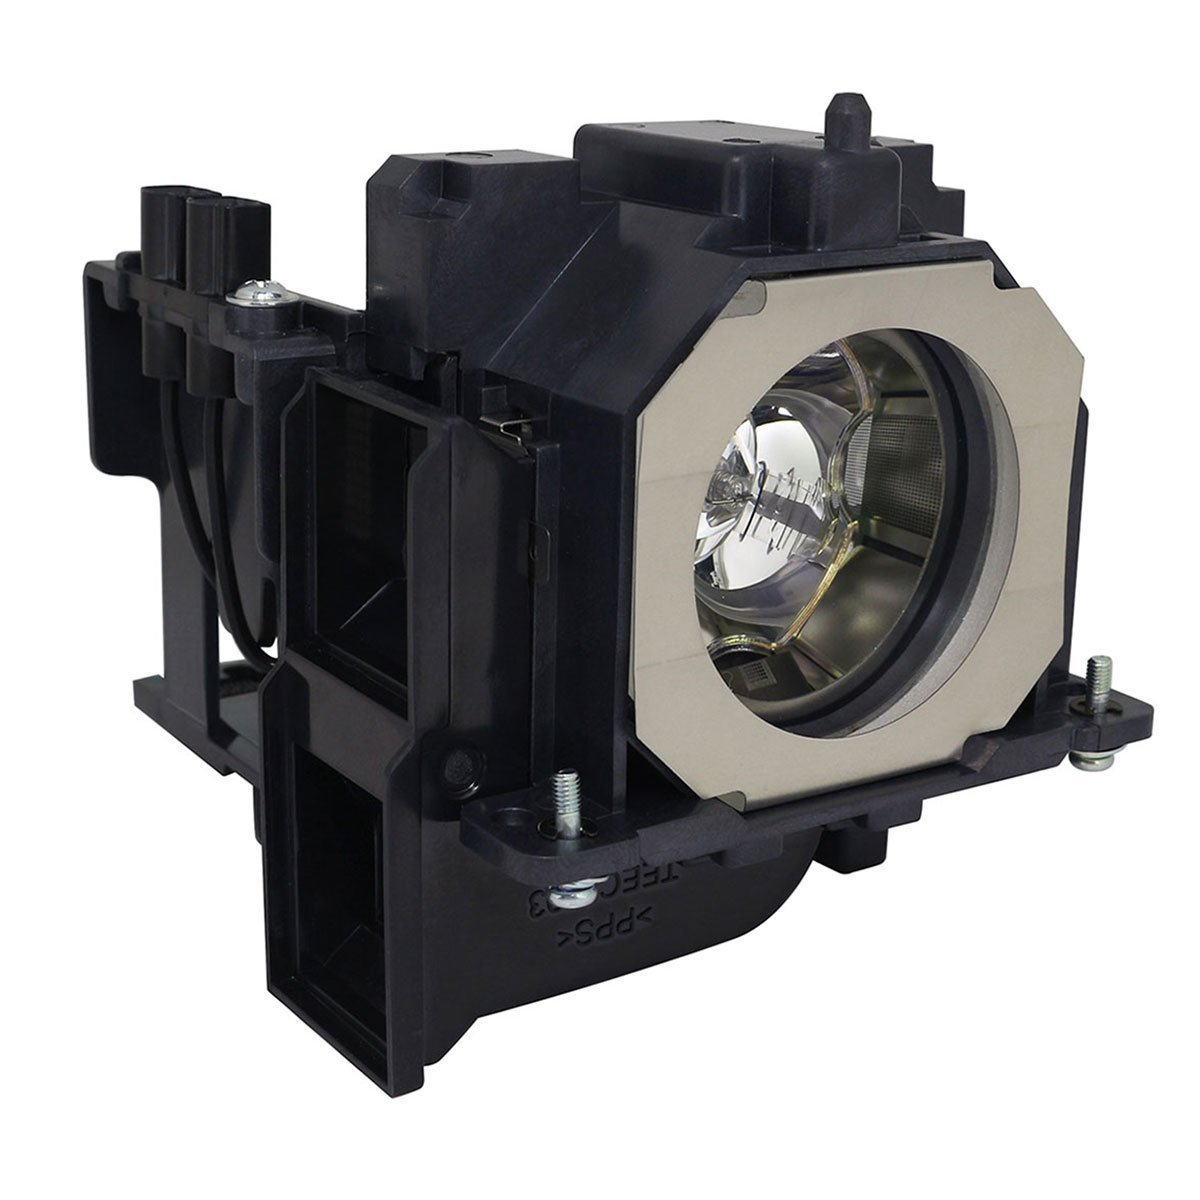 PL9697 Sharp Projector Assembly with Ushio Bulb